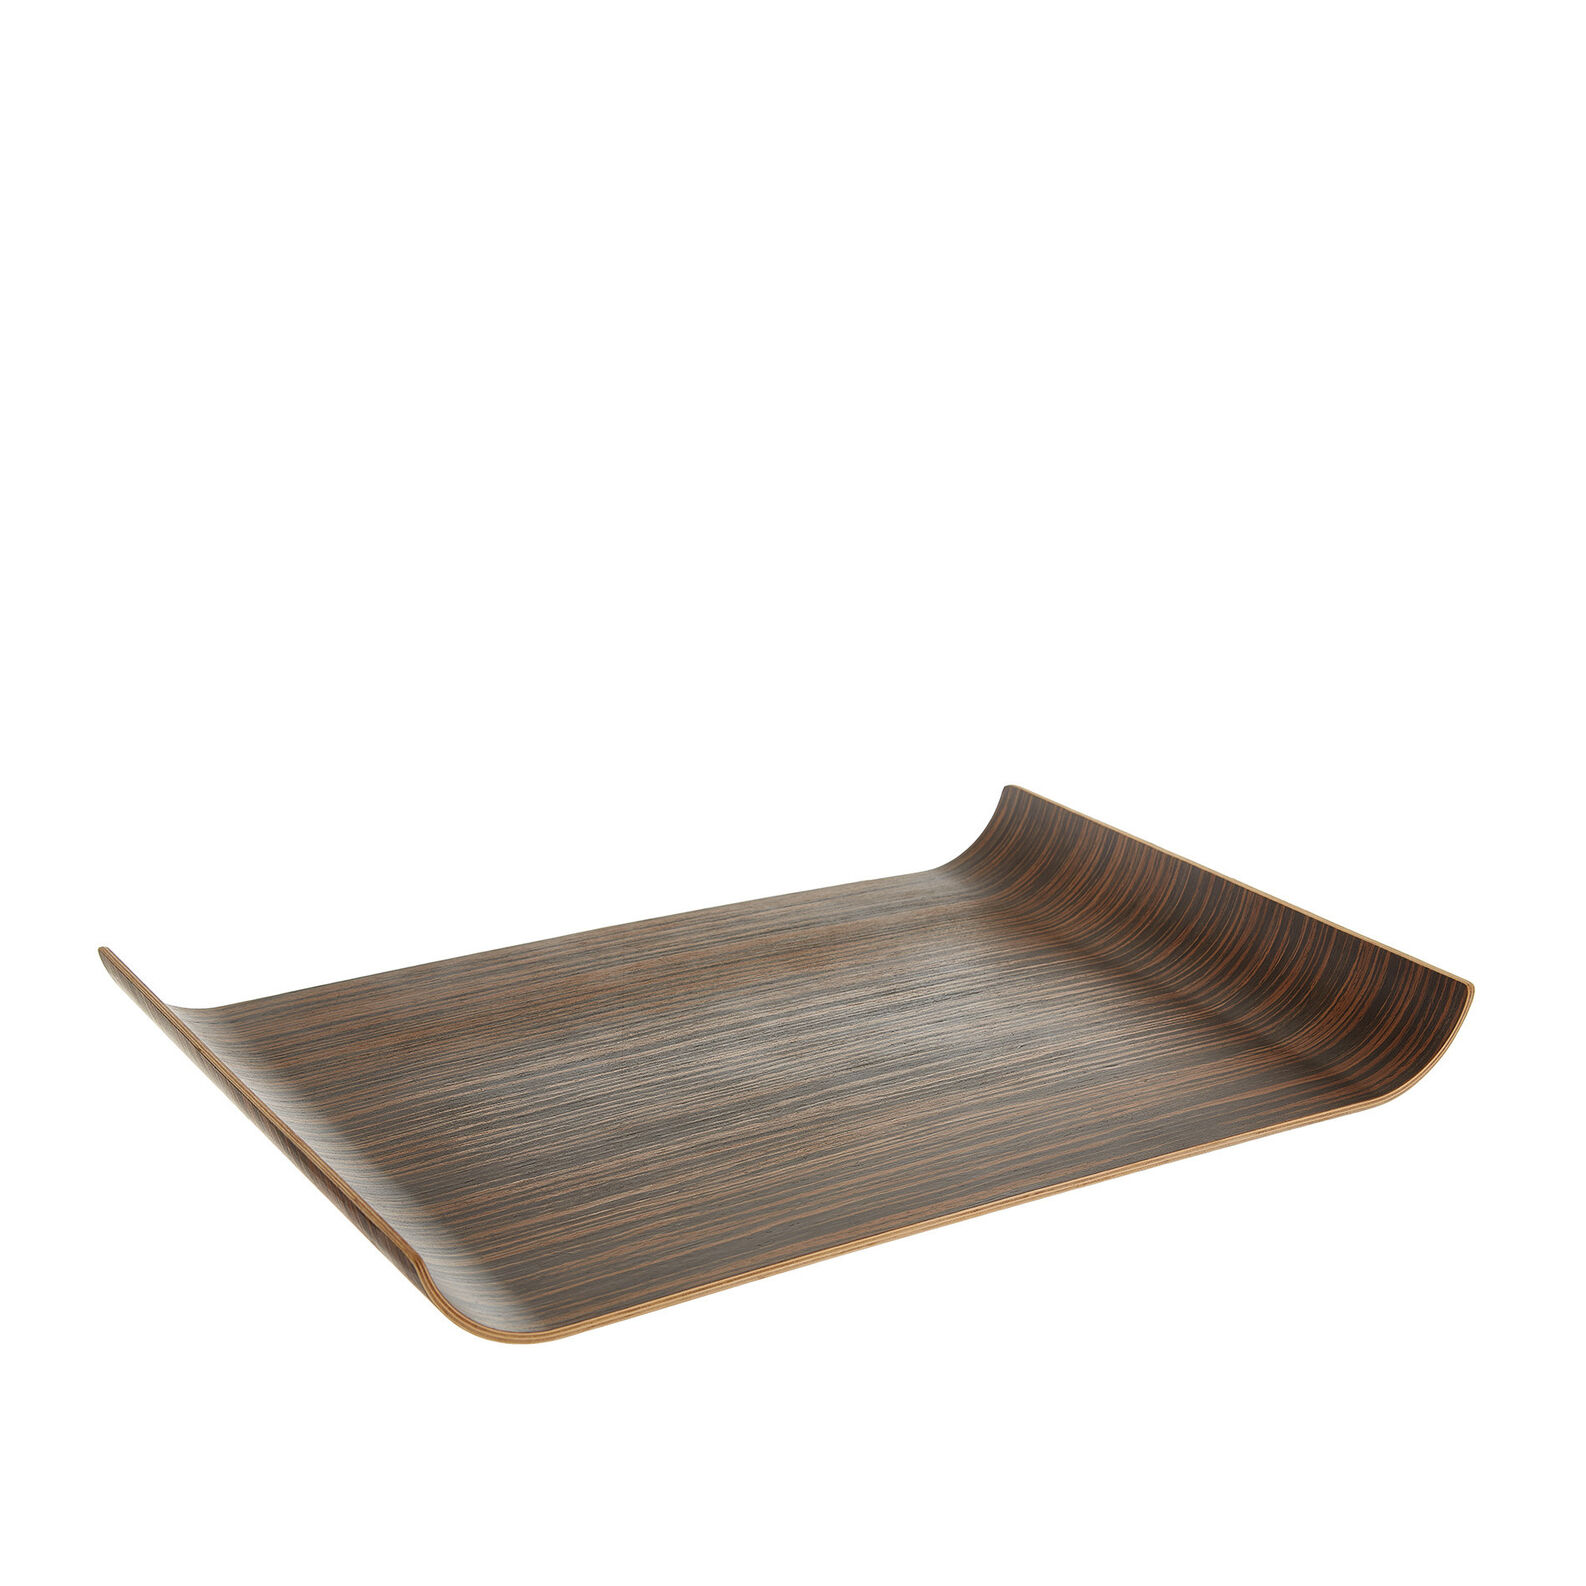 Willow wood charger plate